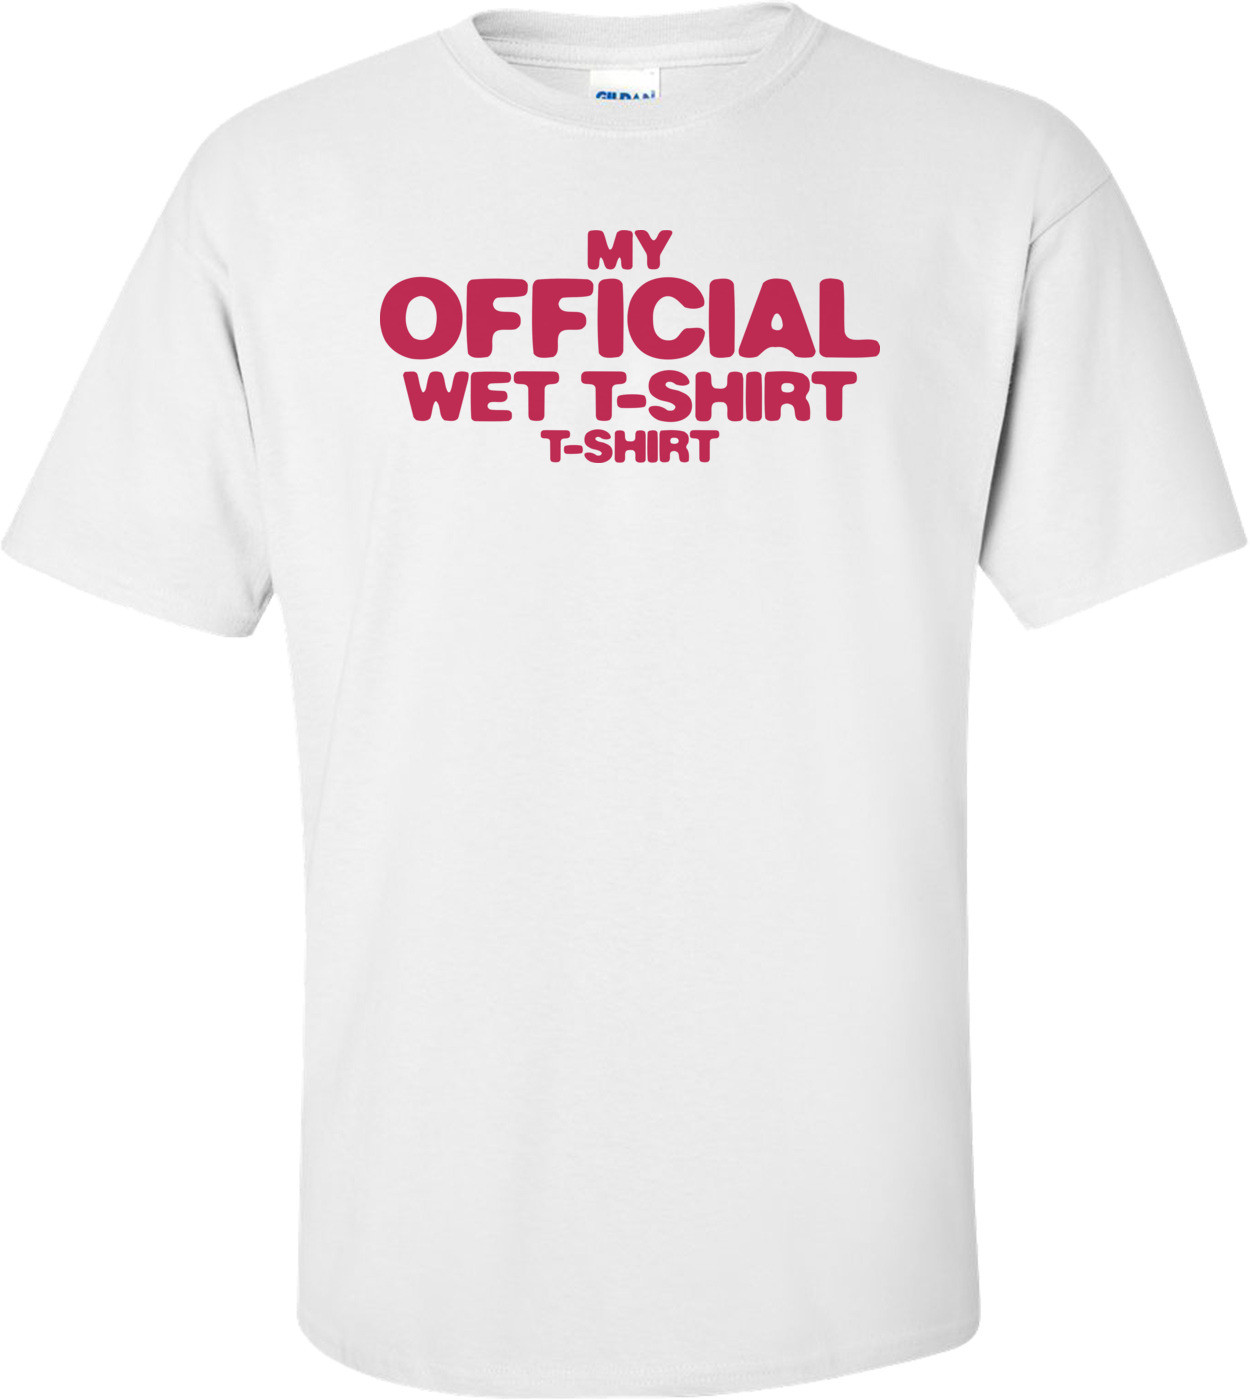 My Official Wet T-shirt T-shirt